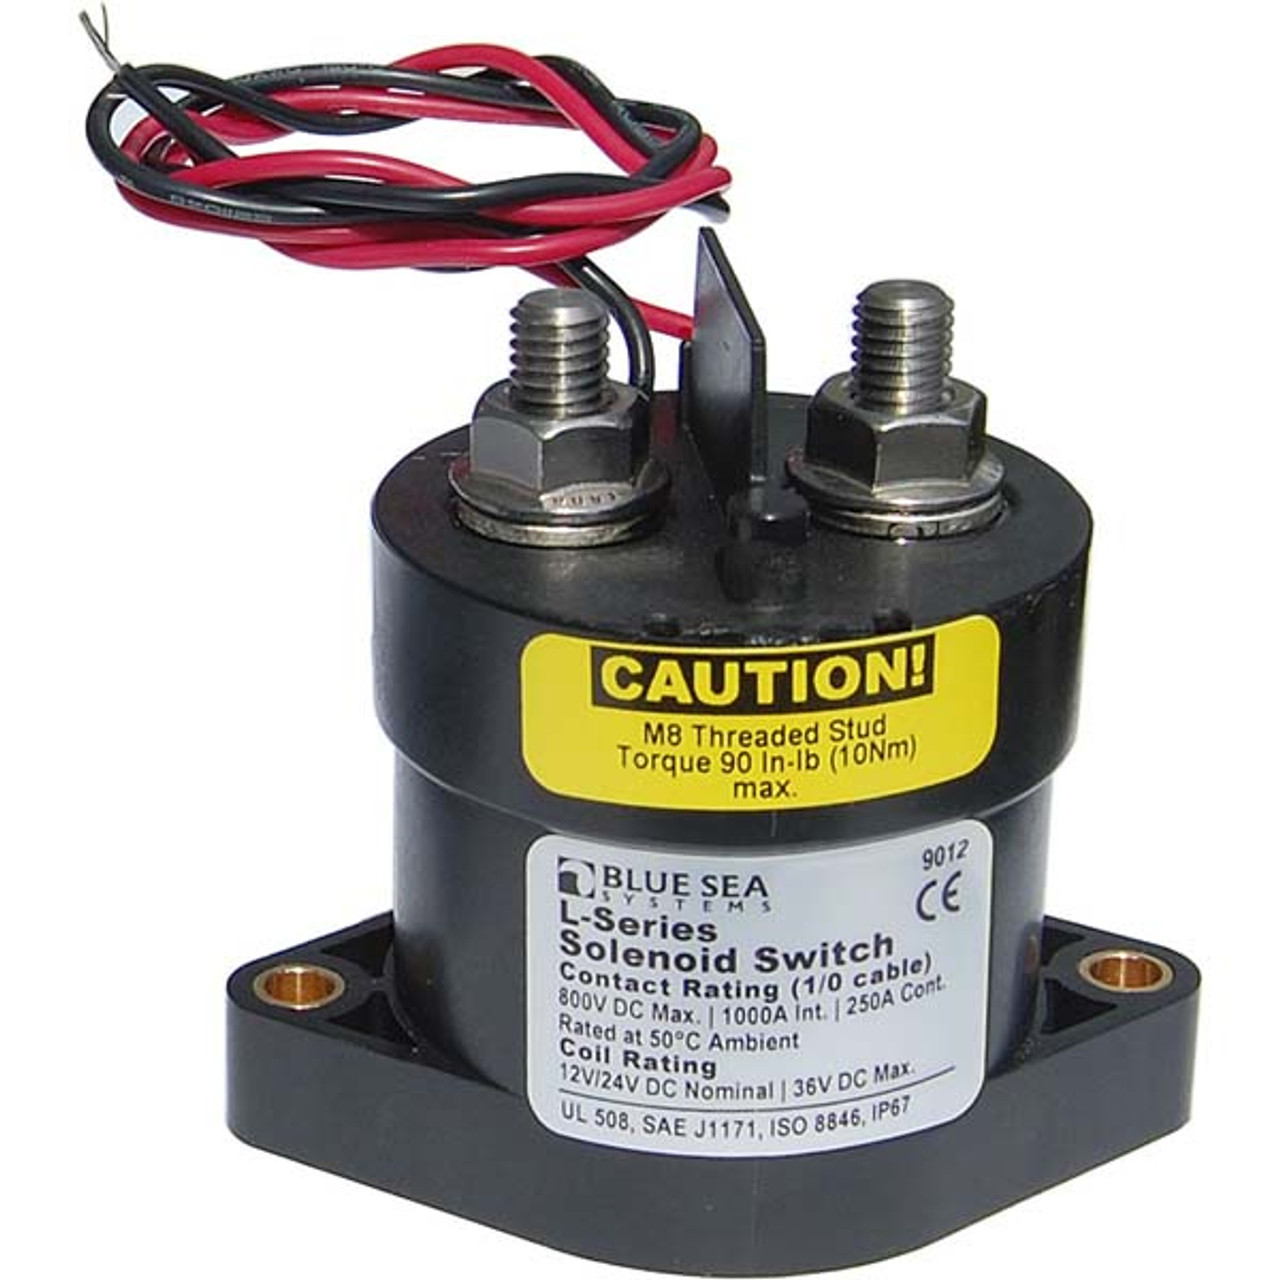 Blue Sea Systems L-Series Solenoid Switch   Battery SwitchWholesale Marine